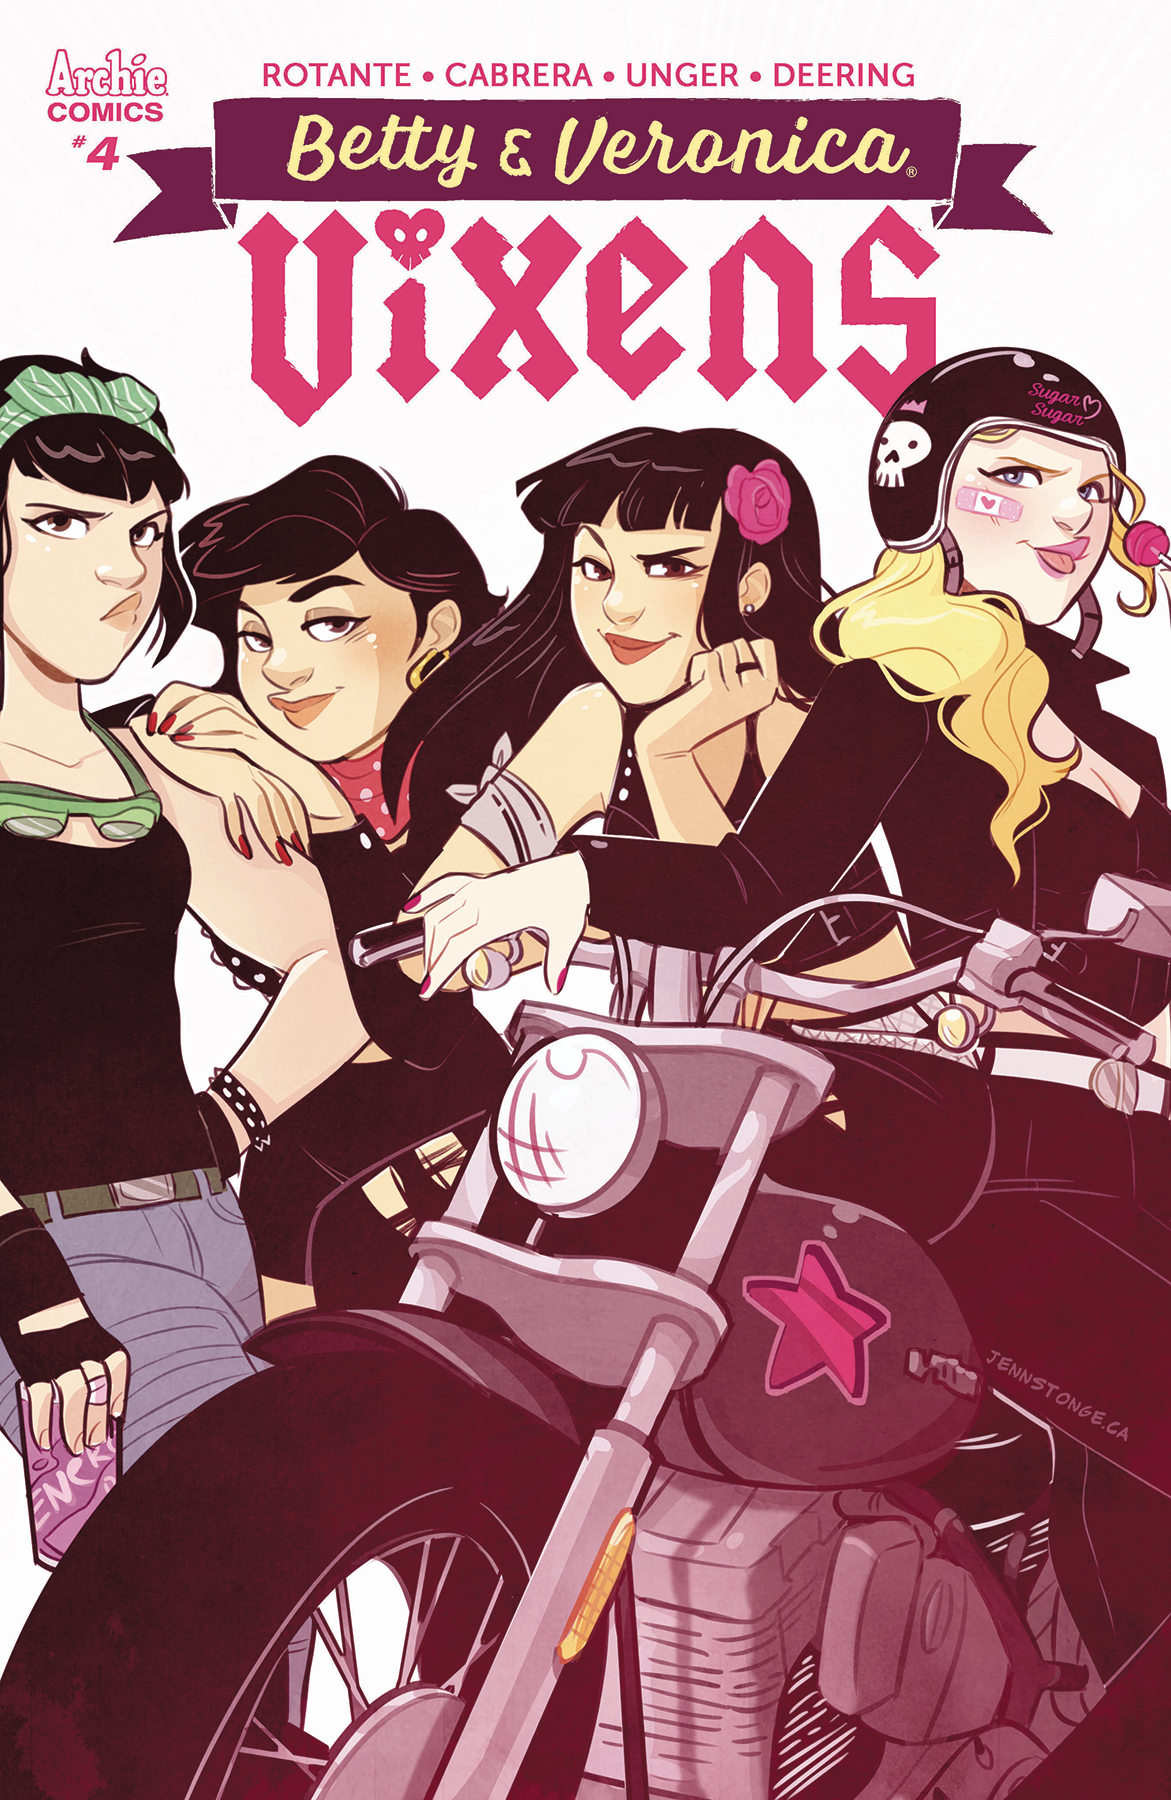 BETTY AND VERONICA VIXENS #4 (OF 10) CVR C ST ONGE